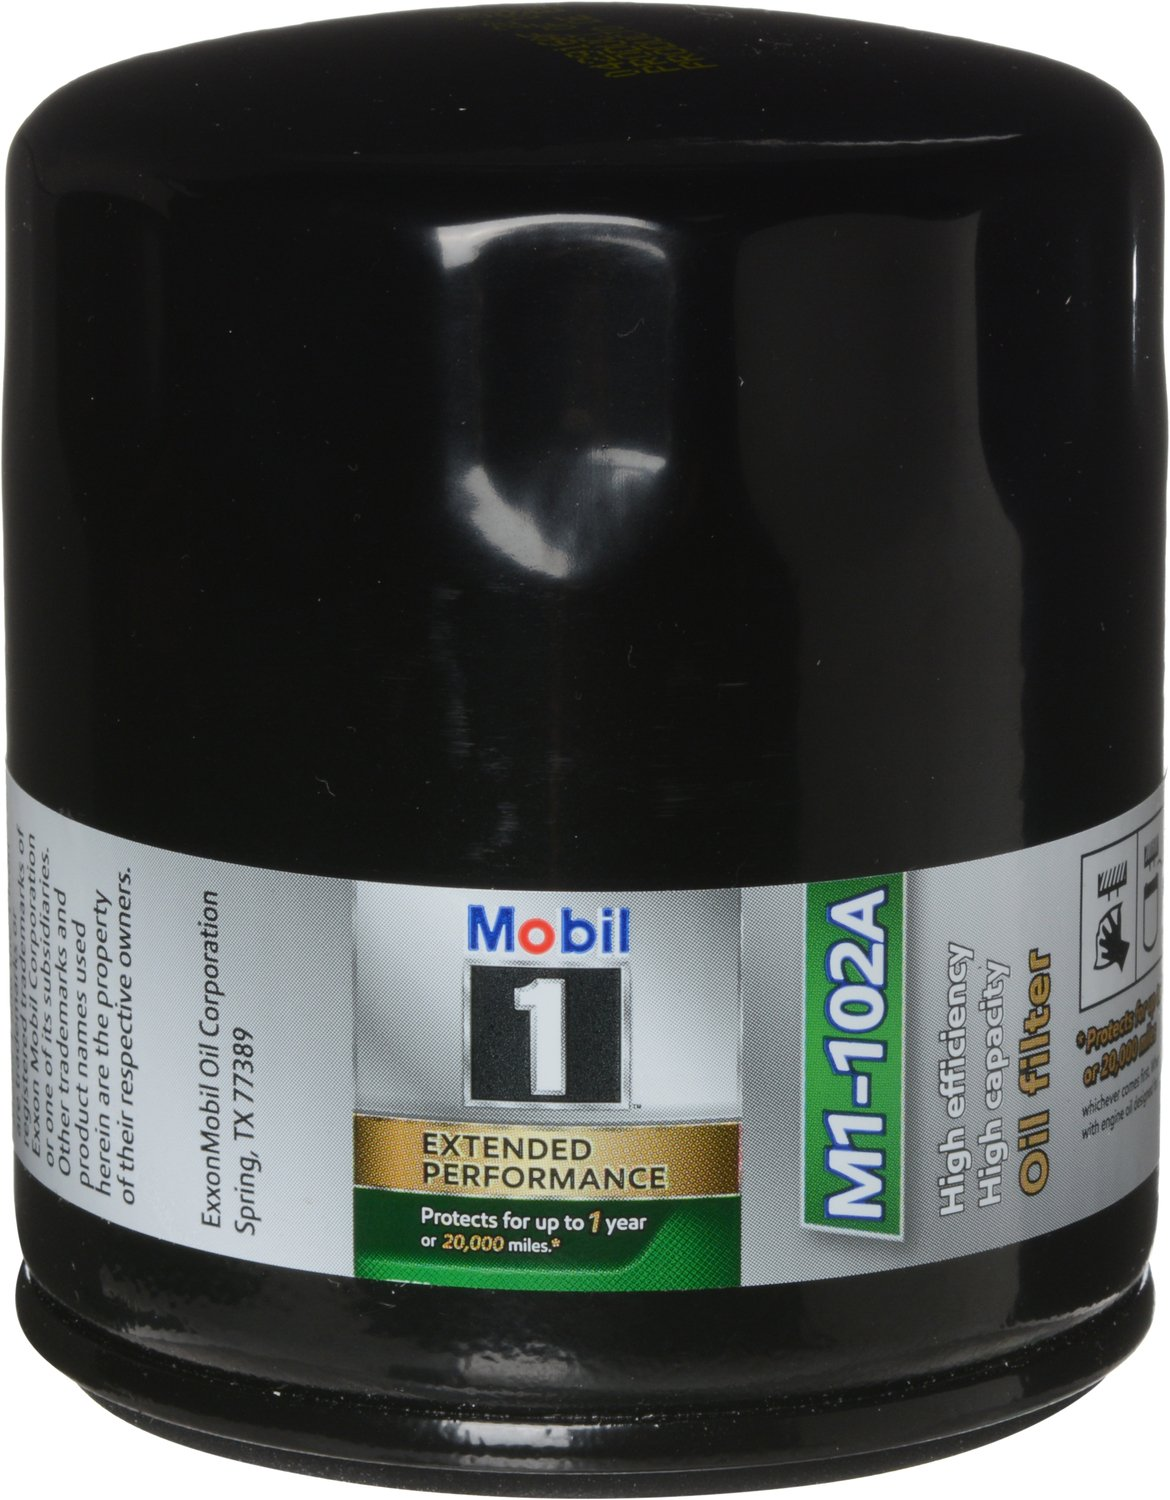 Mobil 1 M1-102A Extended Performance Oil Filter, Pack of 6